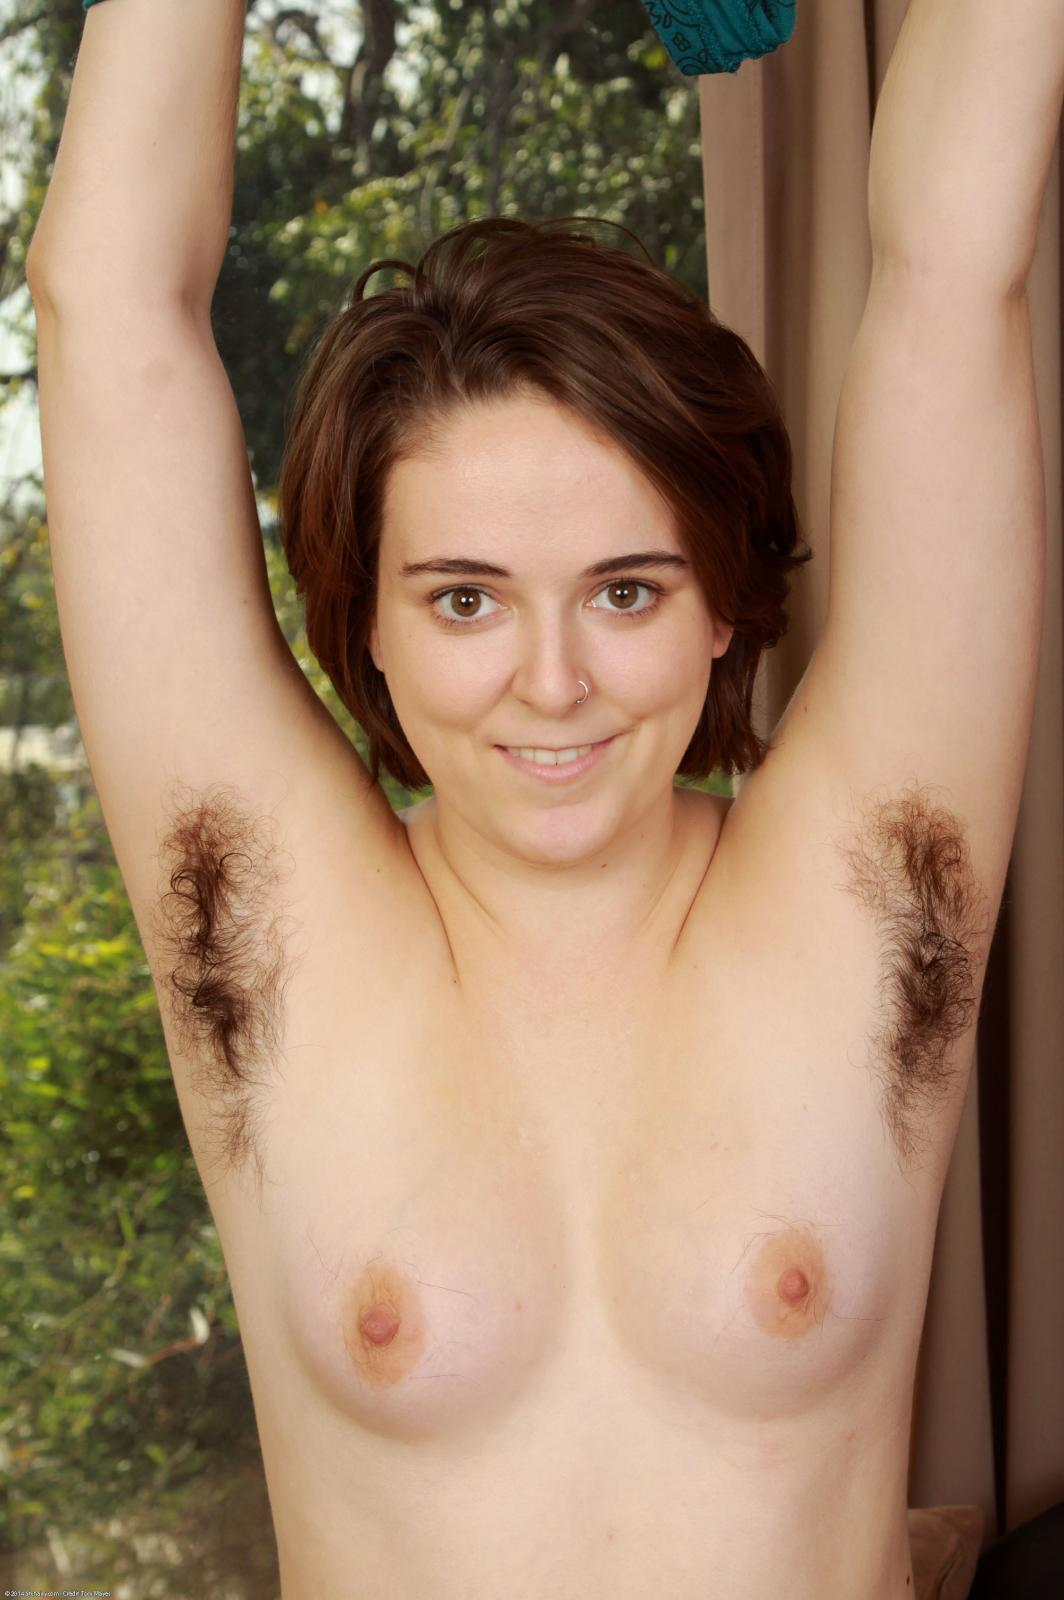 Hairy armpits with girls